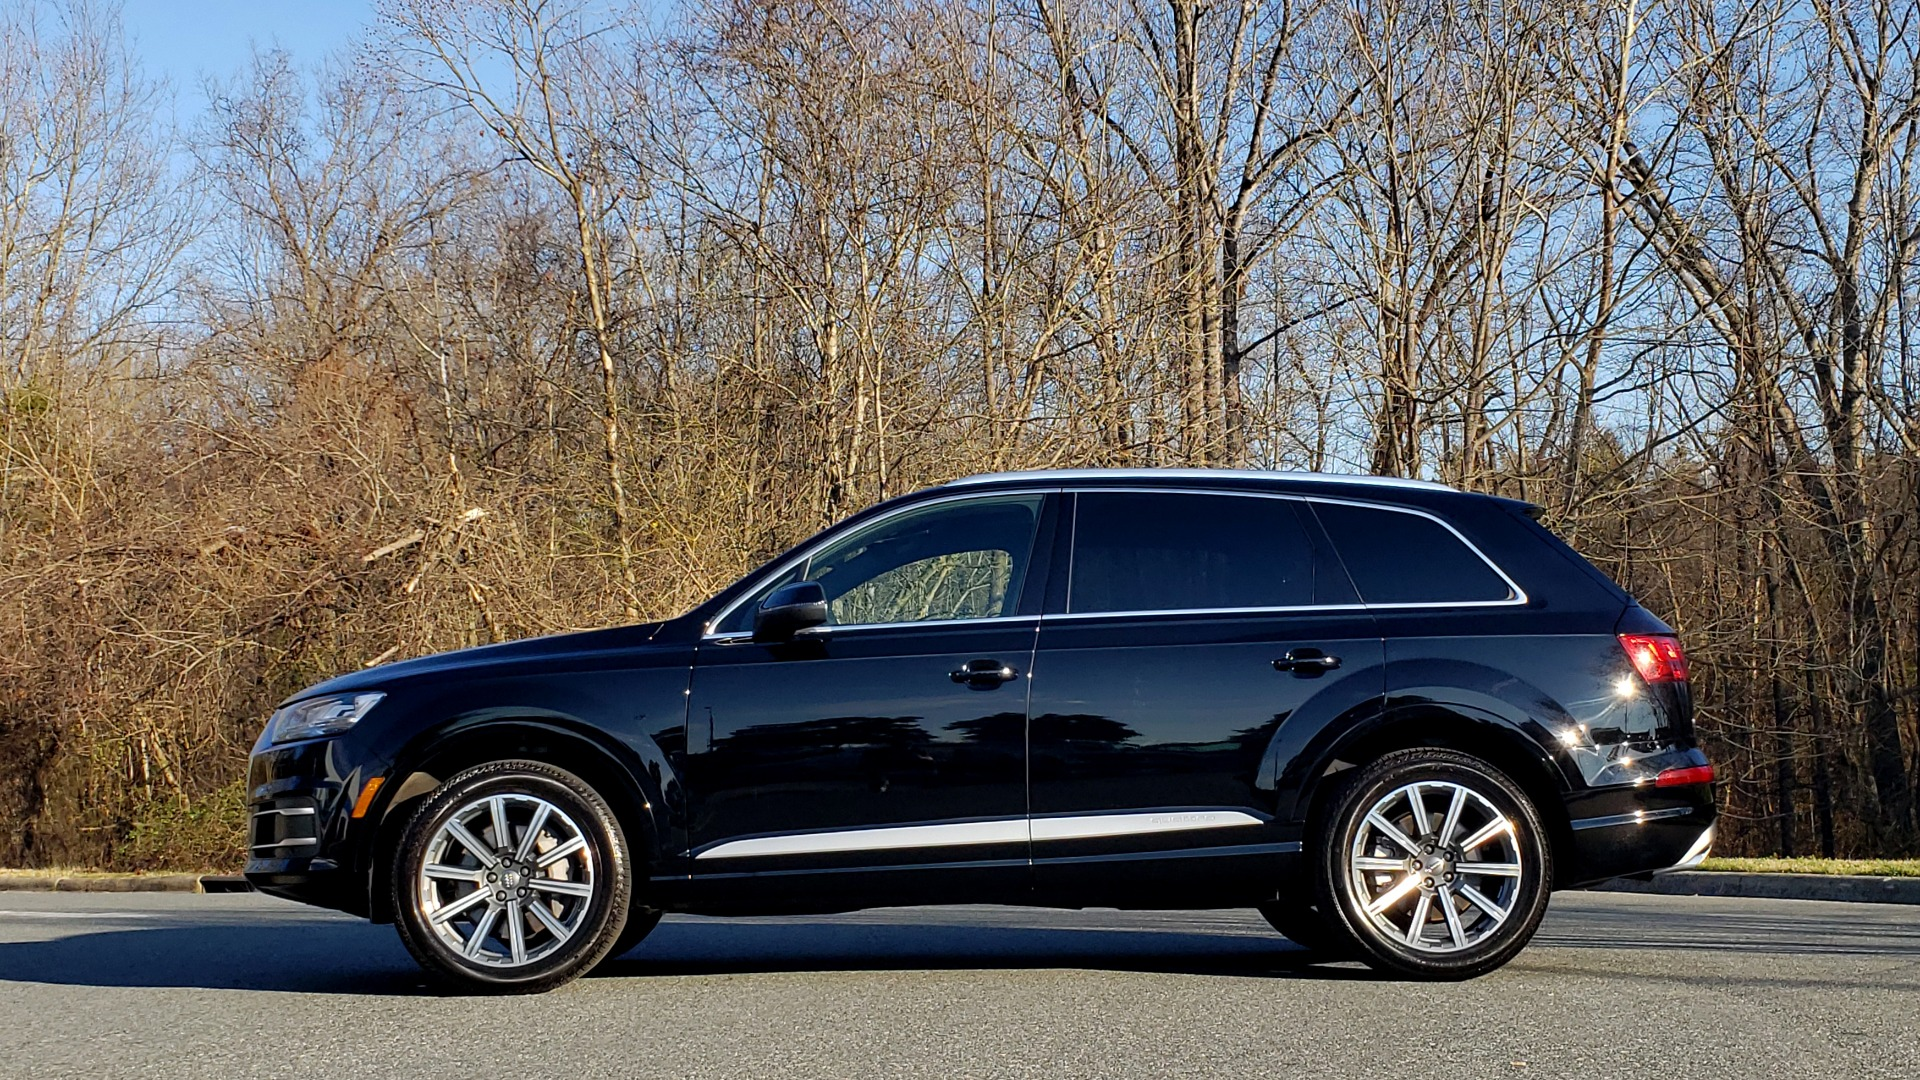 Used 2019 Audi Q7 PREMIUM PLUS / NAV / PANO-ROOF / 3-ROW / REARVIEW for sale Sold at Formula Imports in Charlotte NC 28227 2